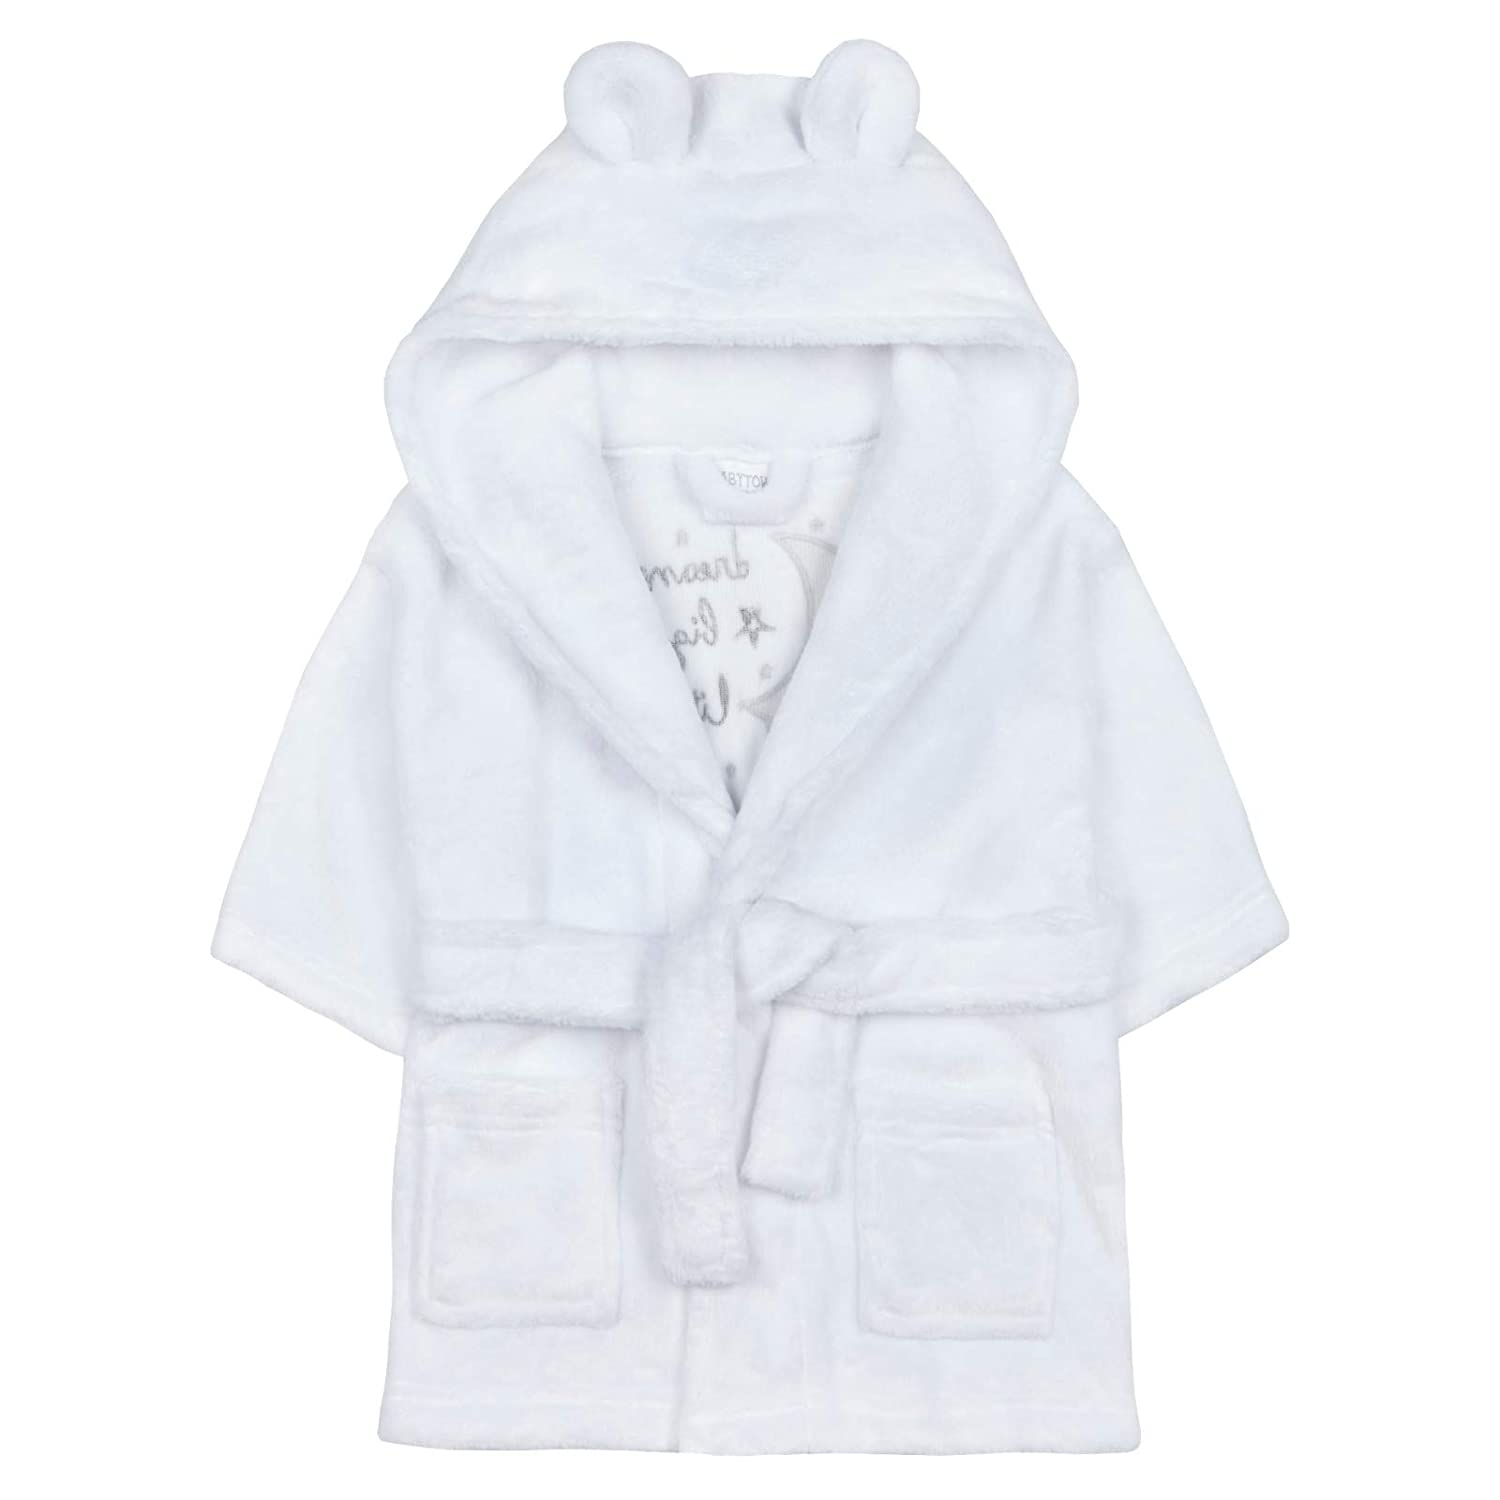 Strong Souls Baby Boys Girls 3D Slogan Hooded Dressing Gown Shoe Directory